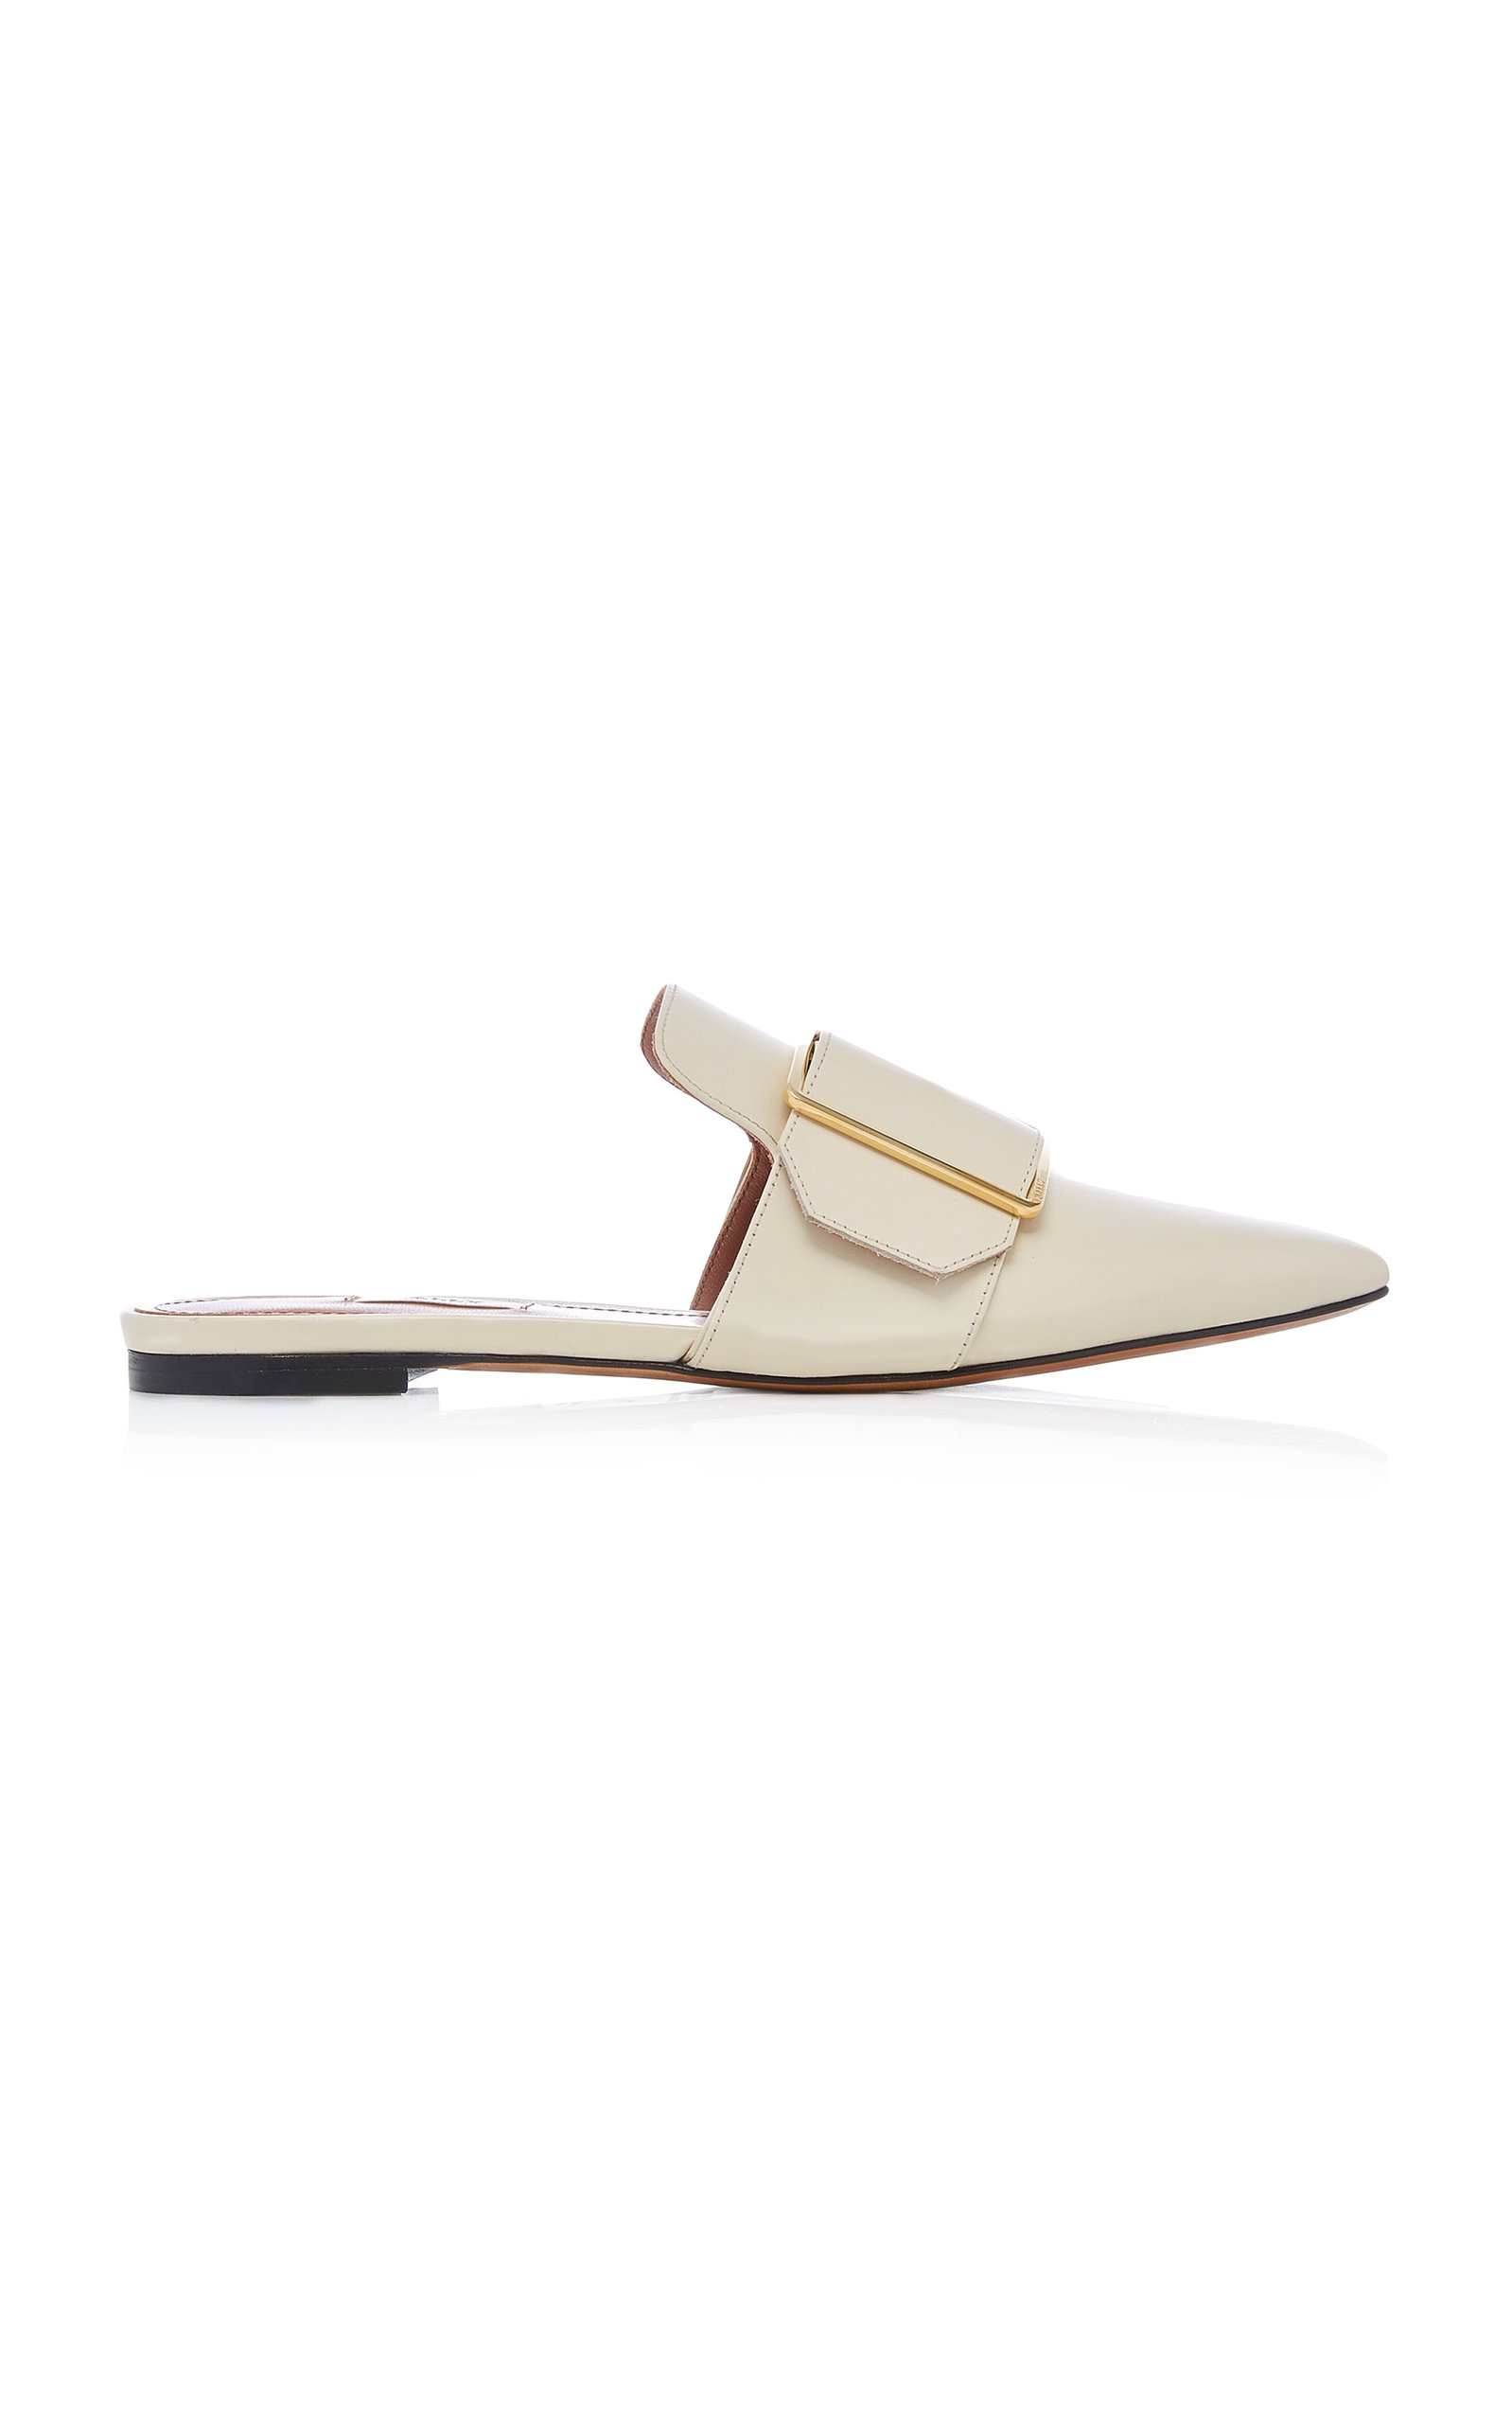 BALLY Hamelin Buckled Leather Mule in White